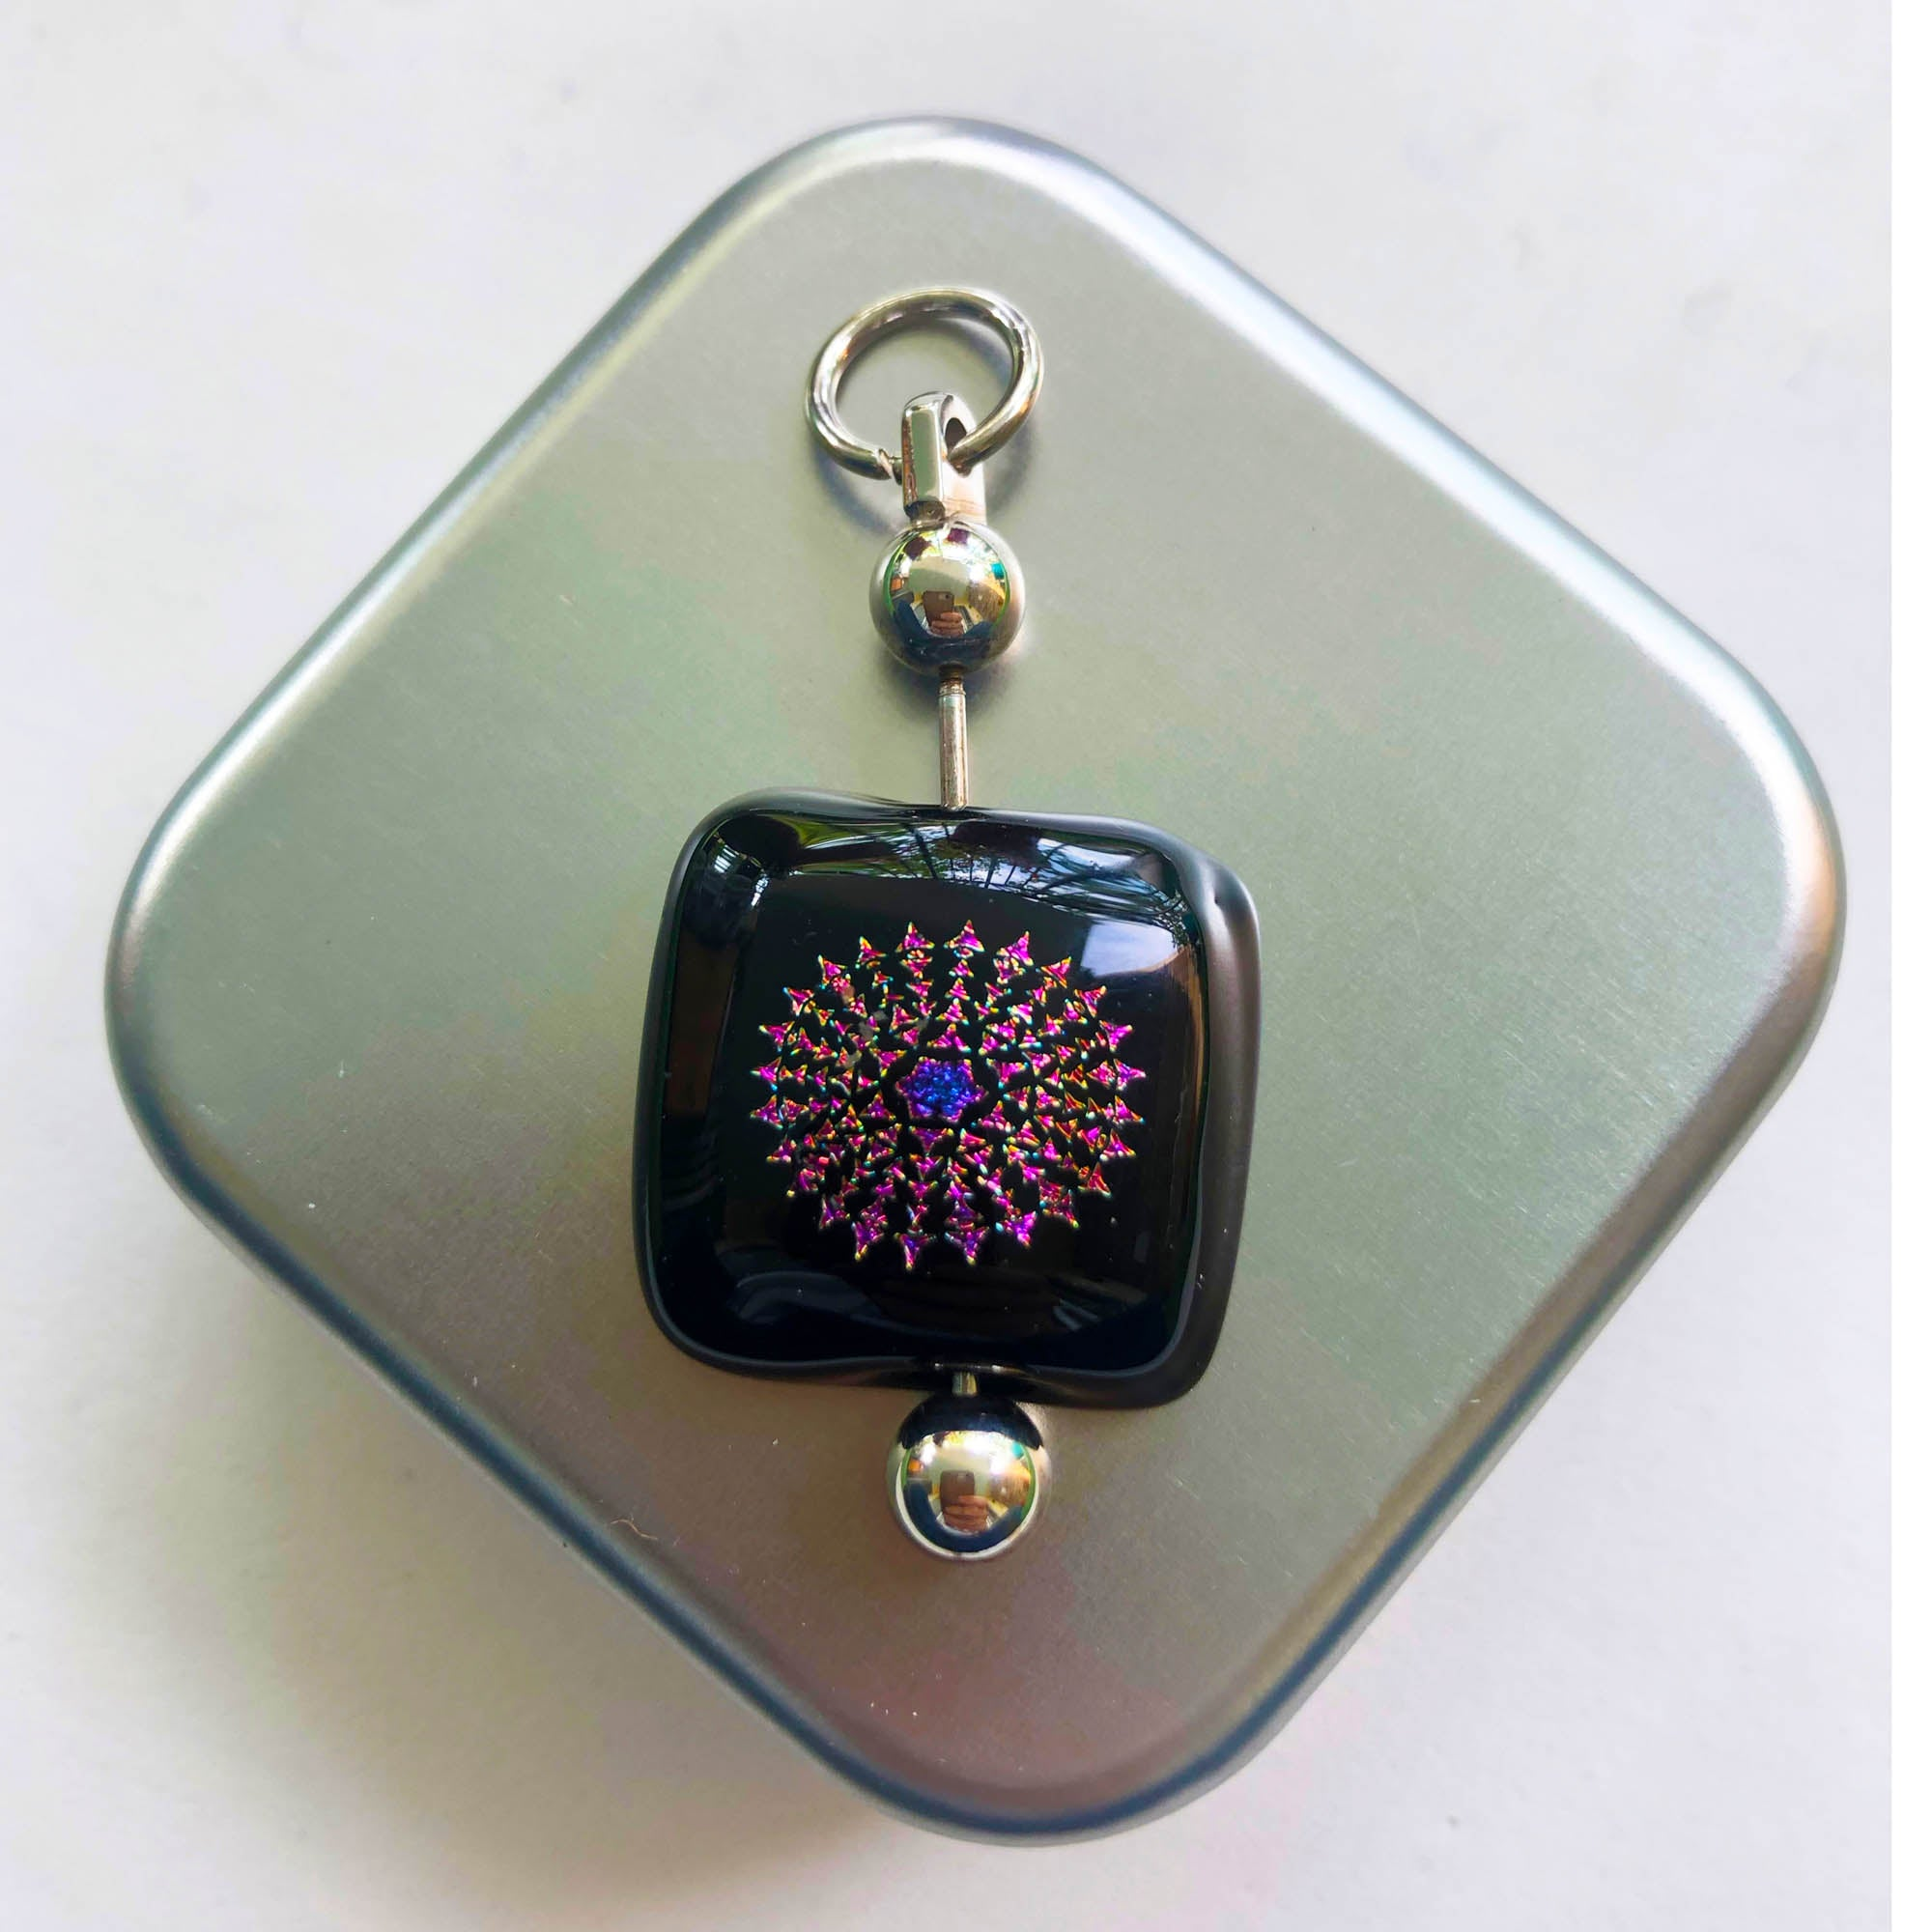 Pendant Square as Piercing, unisex, inspired in the metallic colors